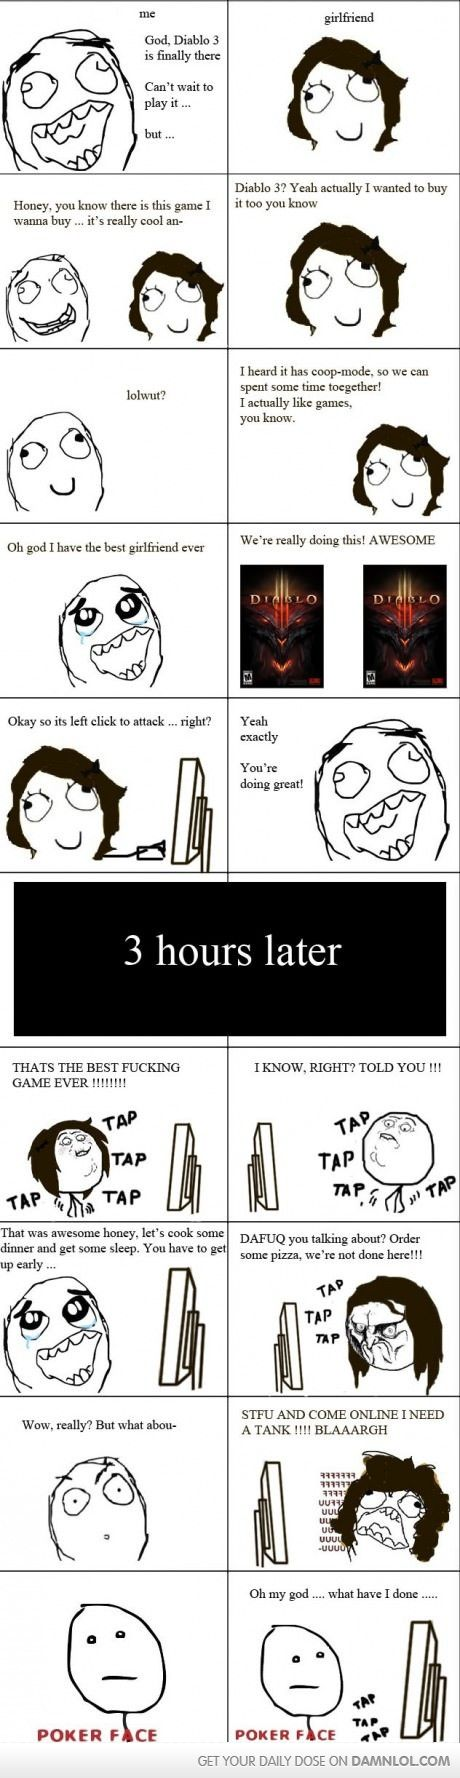 this is why we don't have diablo 3, but possibly Guild wars 2 soon =P